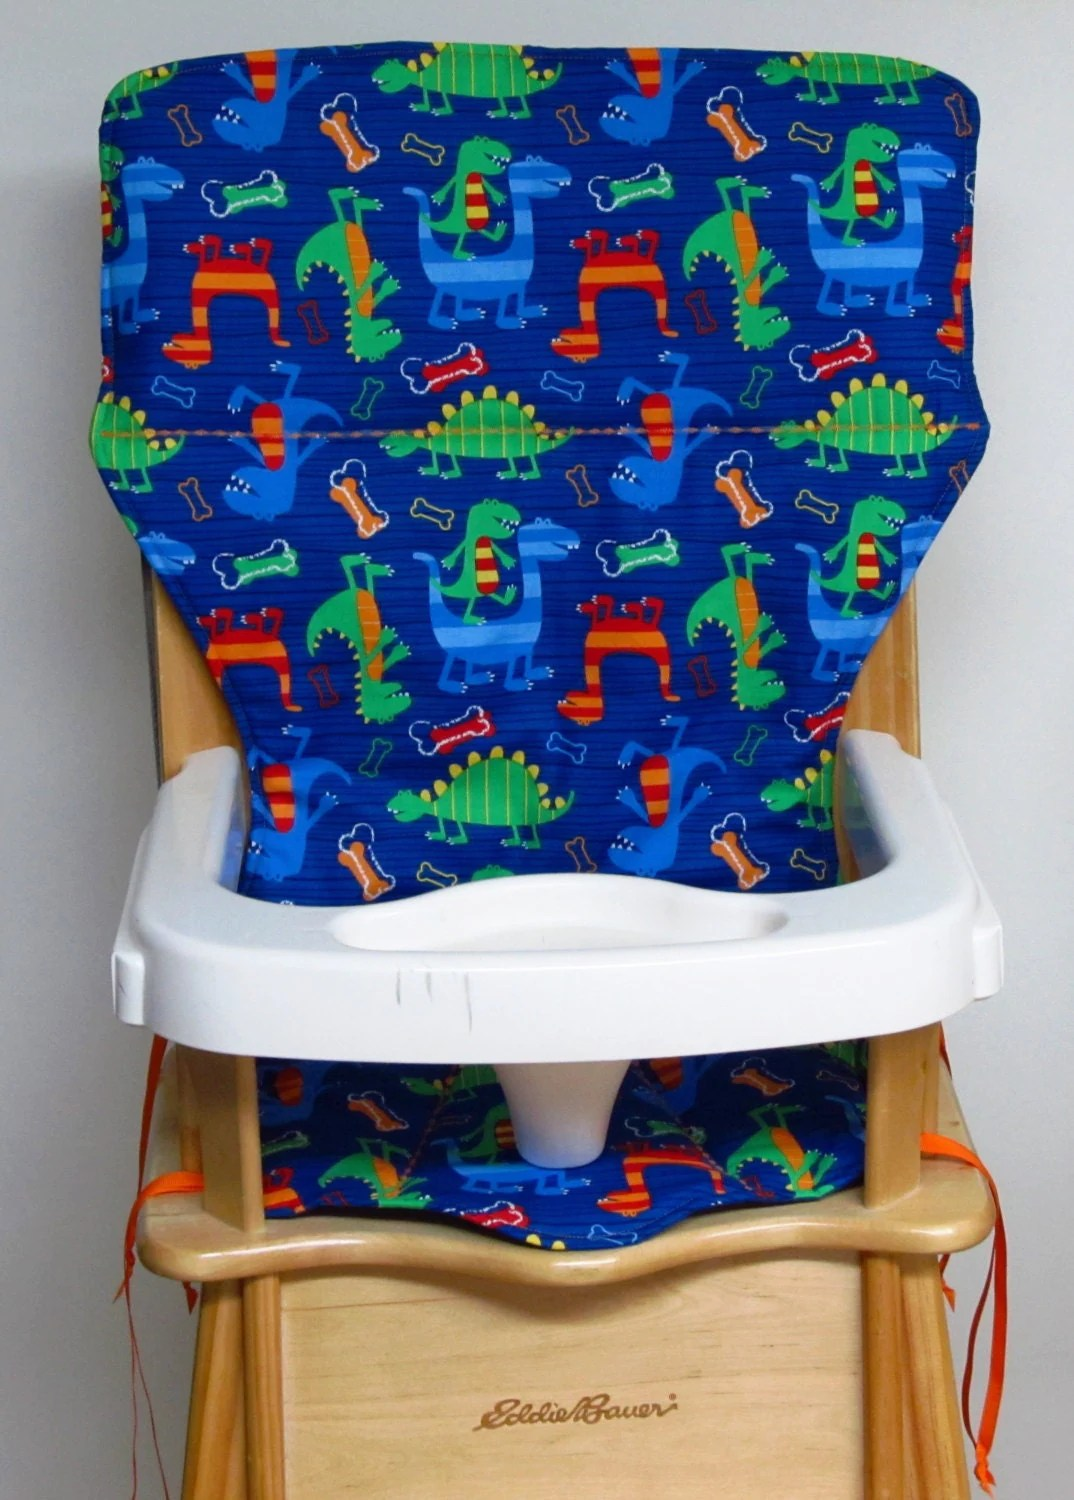 eddie bauer high chairs toddler rocking chair cushions cover replacement paddino